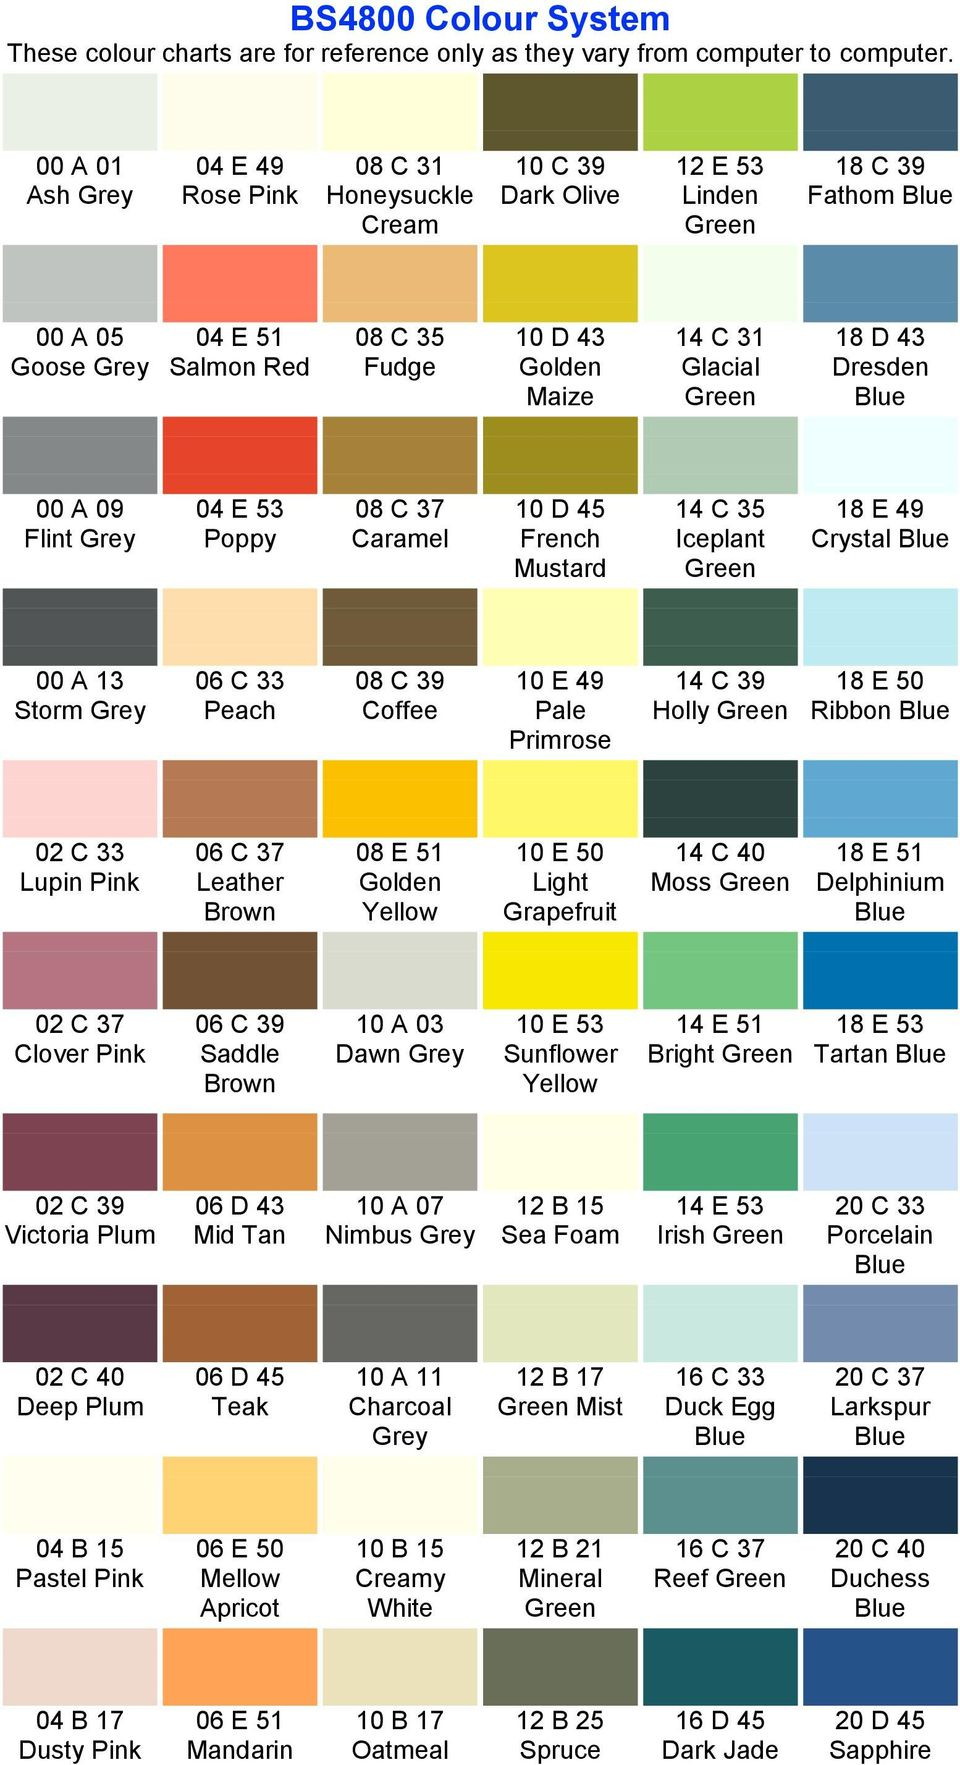 Ral Colour System These Colour Charts Are For Reference Only As They